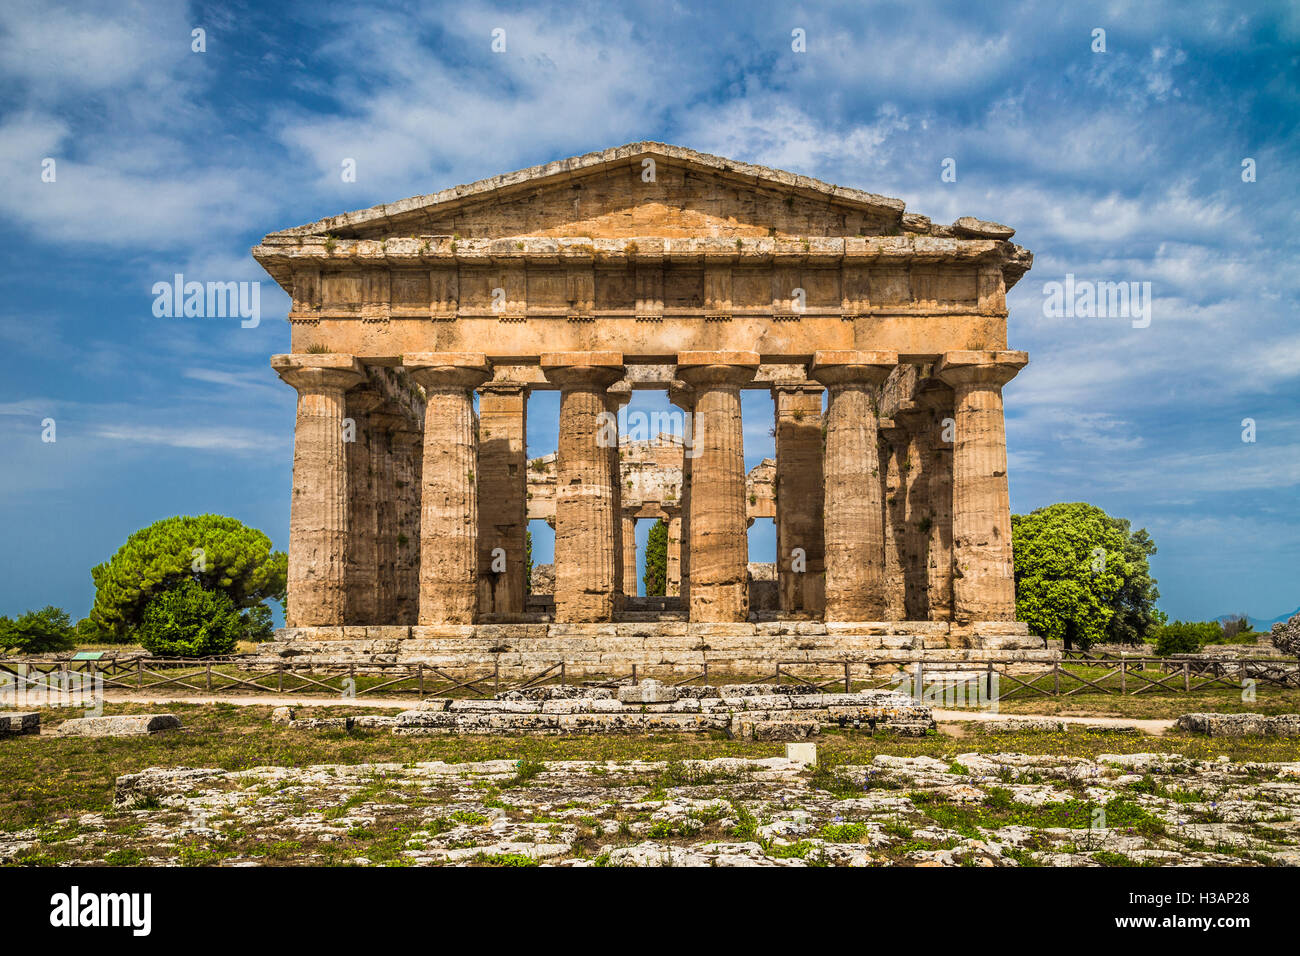 Temple of Hera at famous Paestum Archaeological UNESCO World Heritage Site, which contains some of the most well - Stock Image